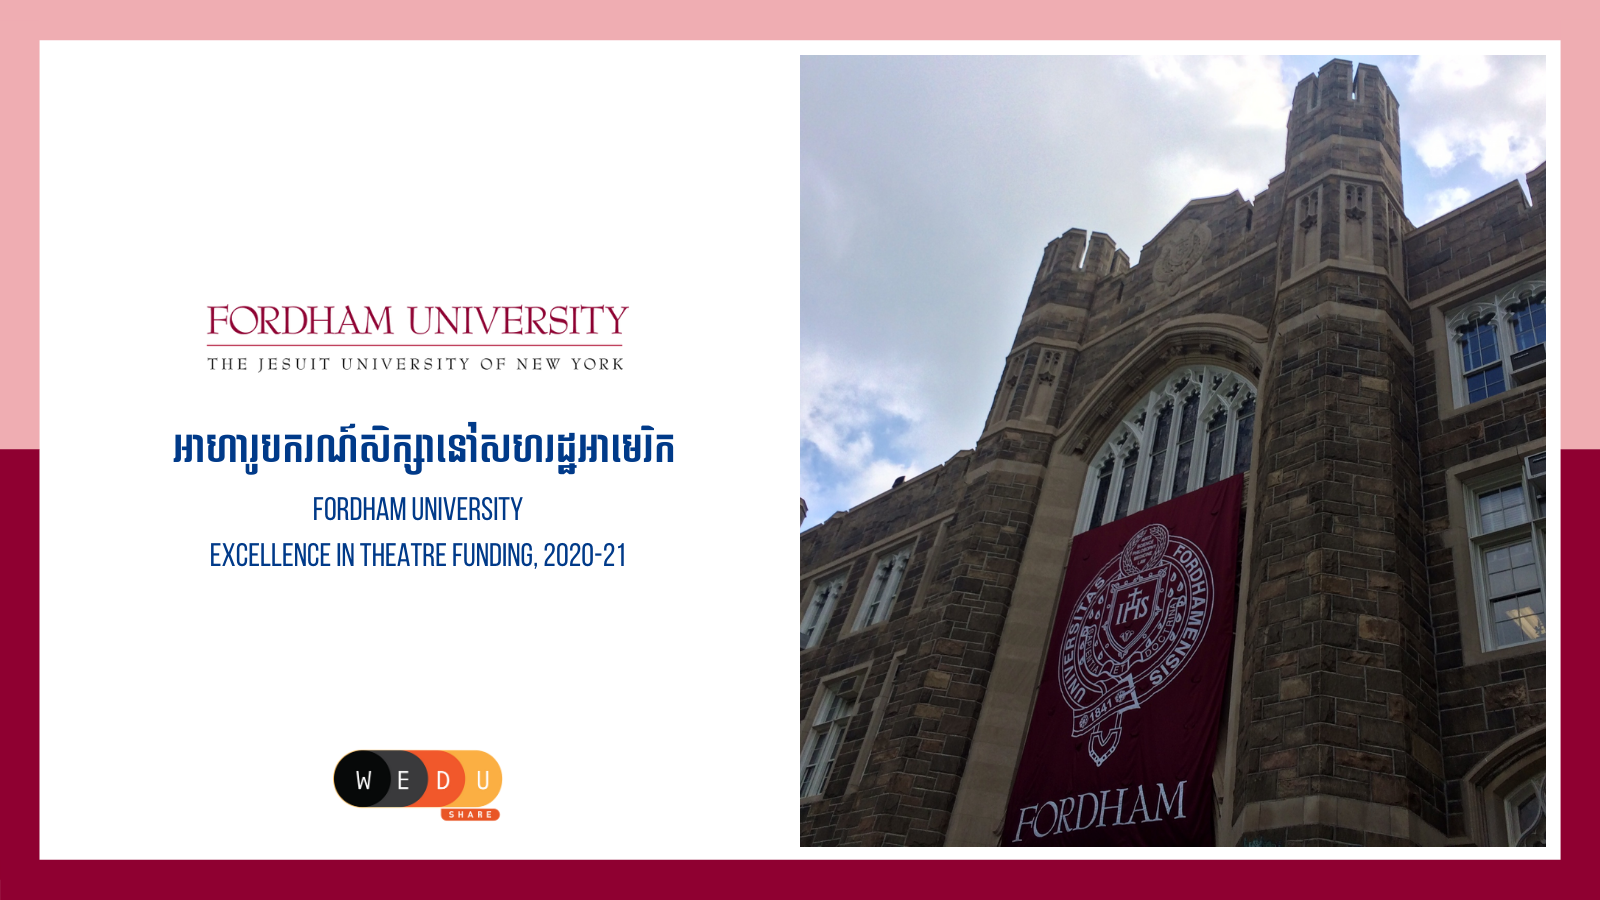 Fordham University Excellence in Theatre Funding, 2020-21